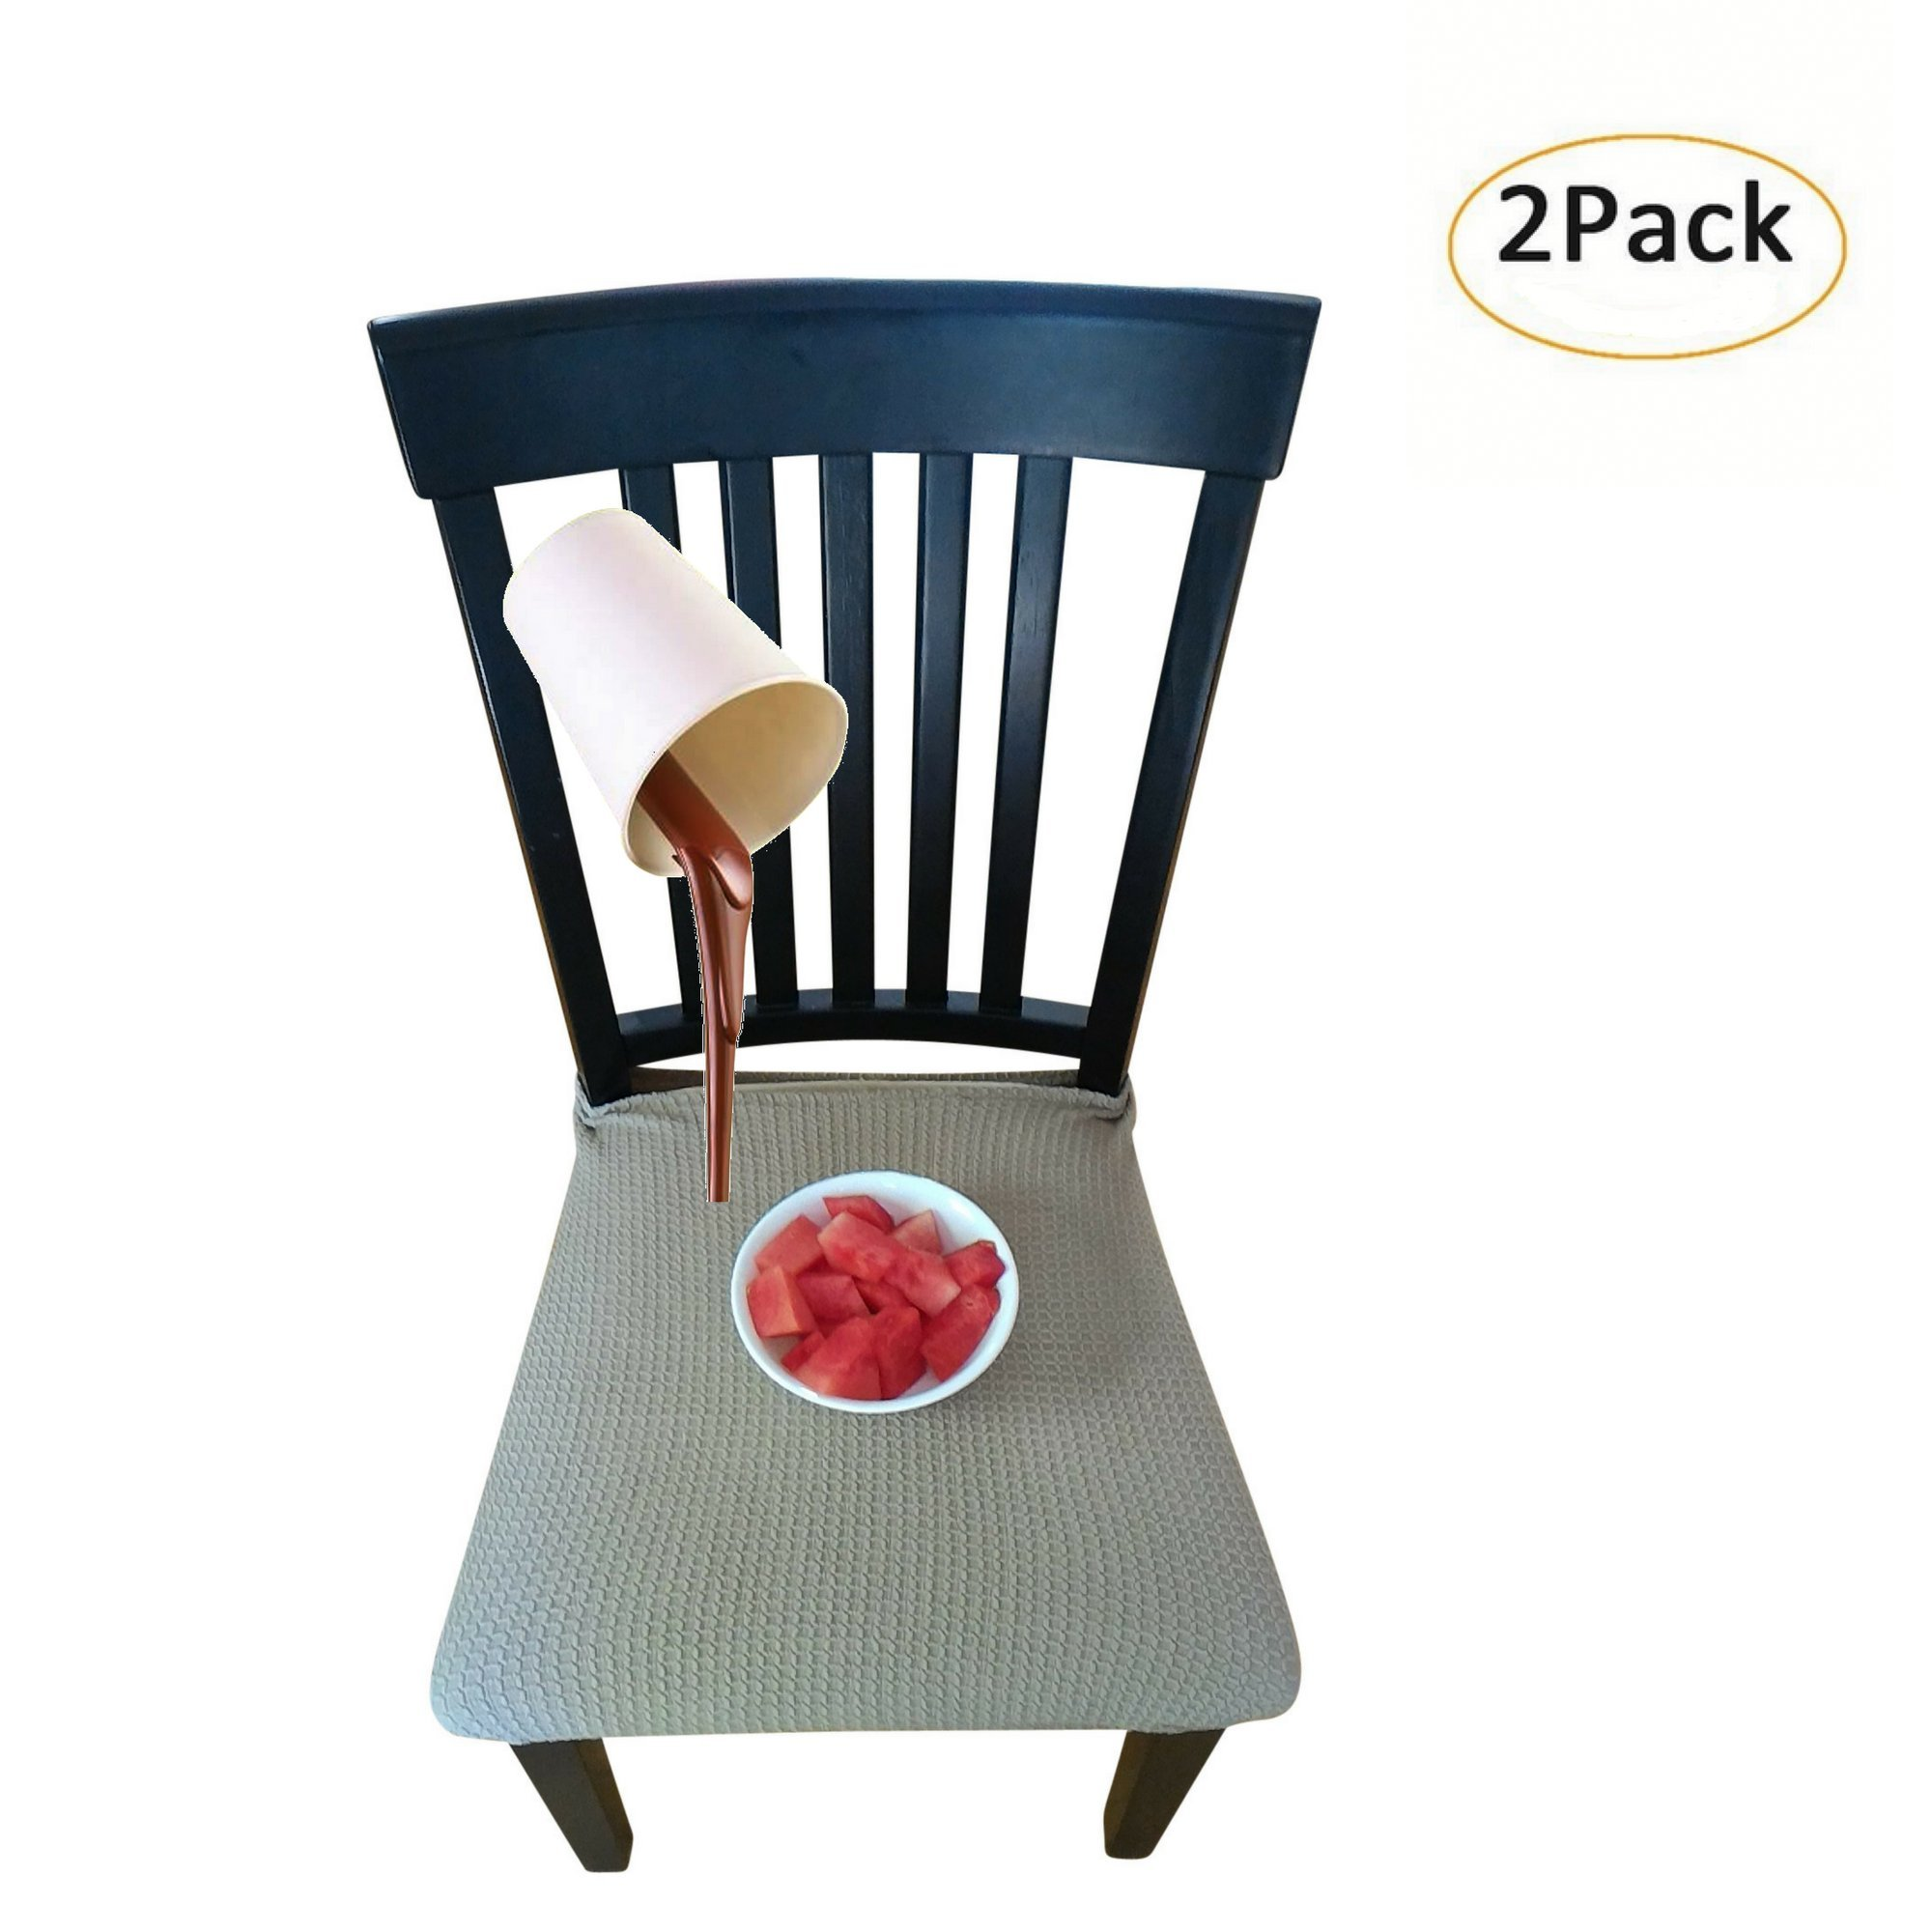 Waterproof Dining Chair Cover Protector - Pack of 2 - Perfect For Pets, Kids, Elderly, Restaurants, Party - Machine Washable, Elastic, Removable, Premium Quality, Clean the Mess Easily (Medium Brown)